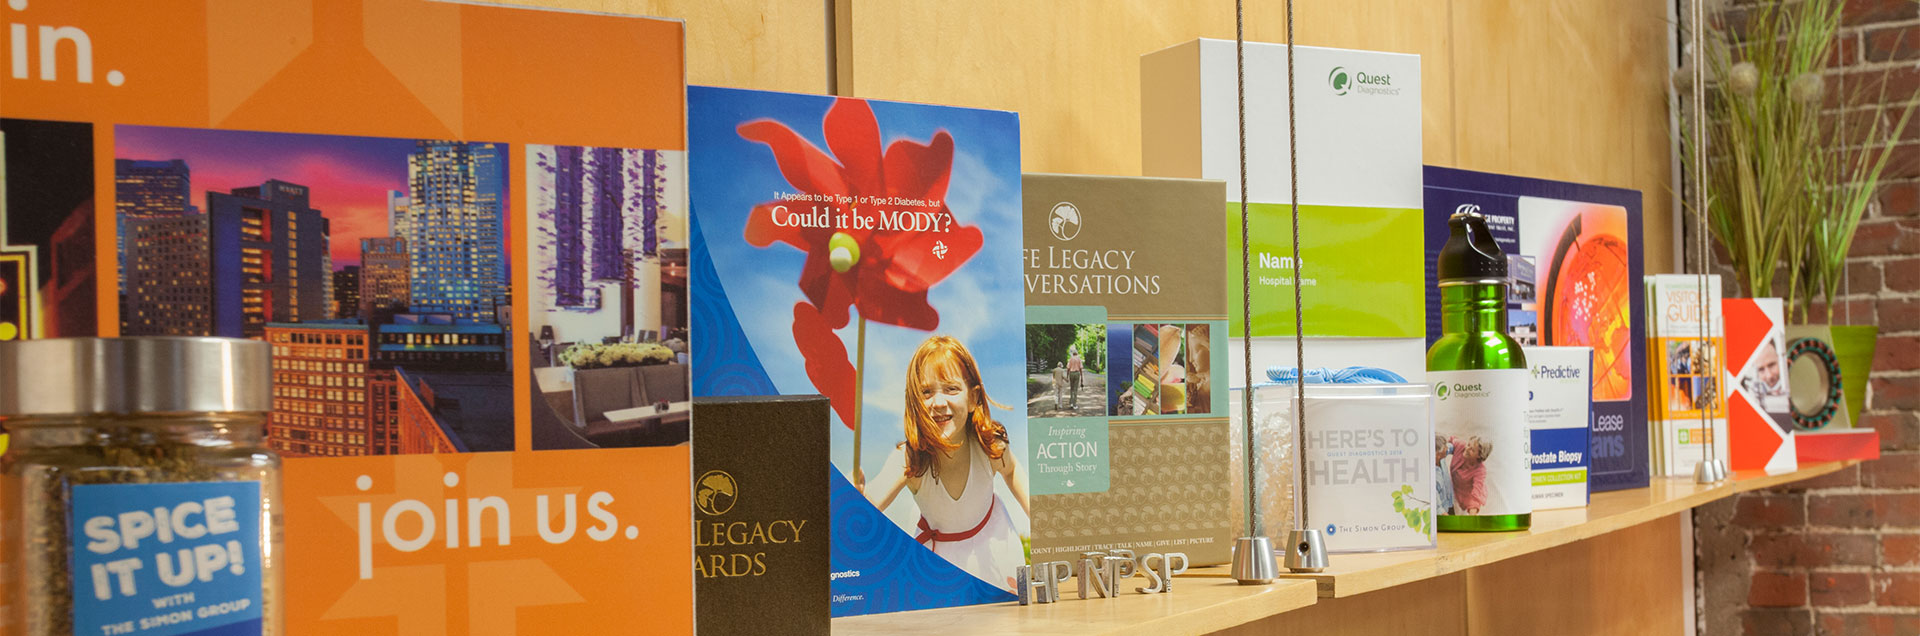 Marketing communications collateral on display at The Simon Group.